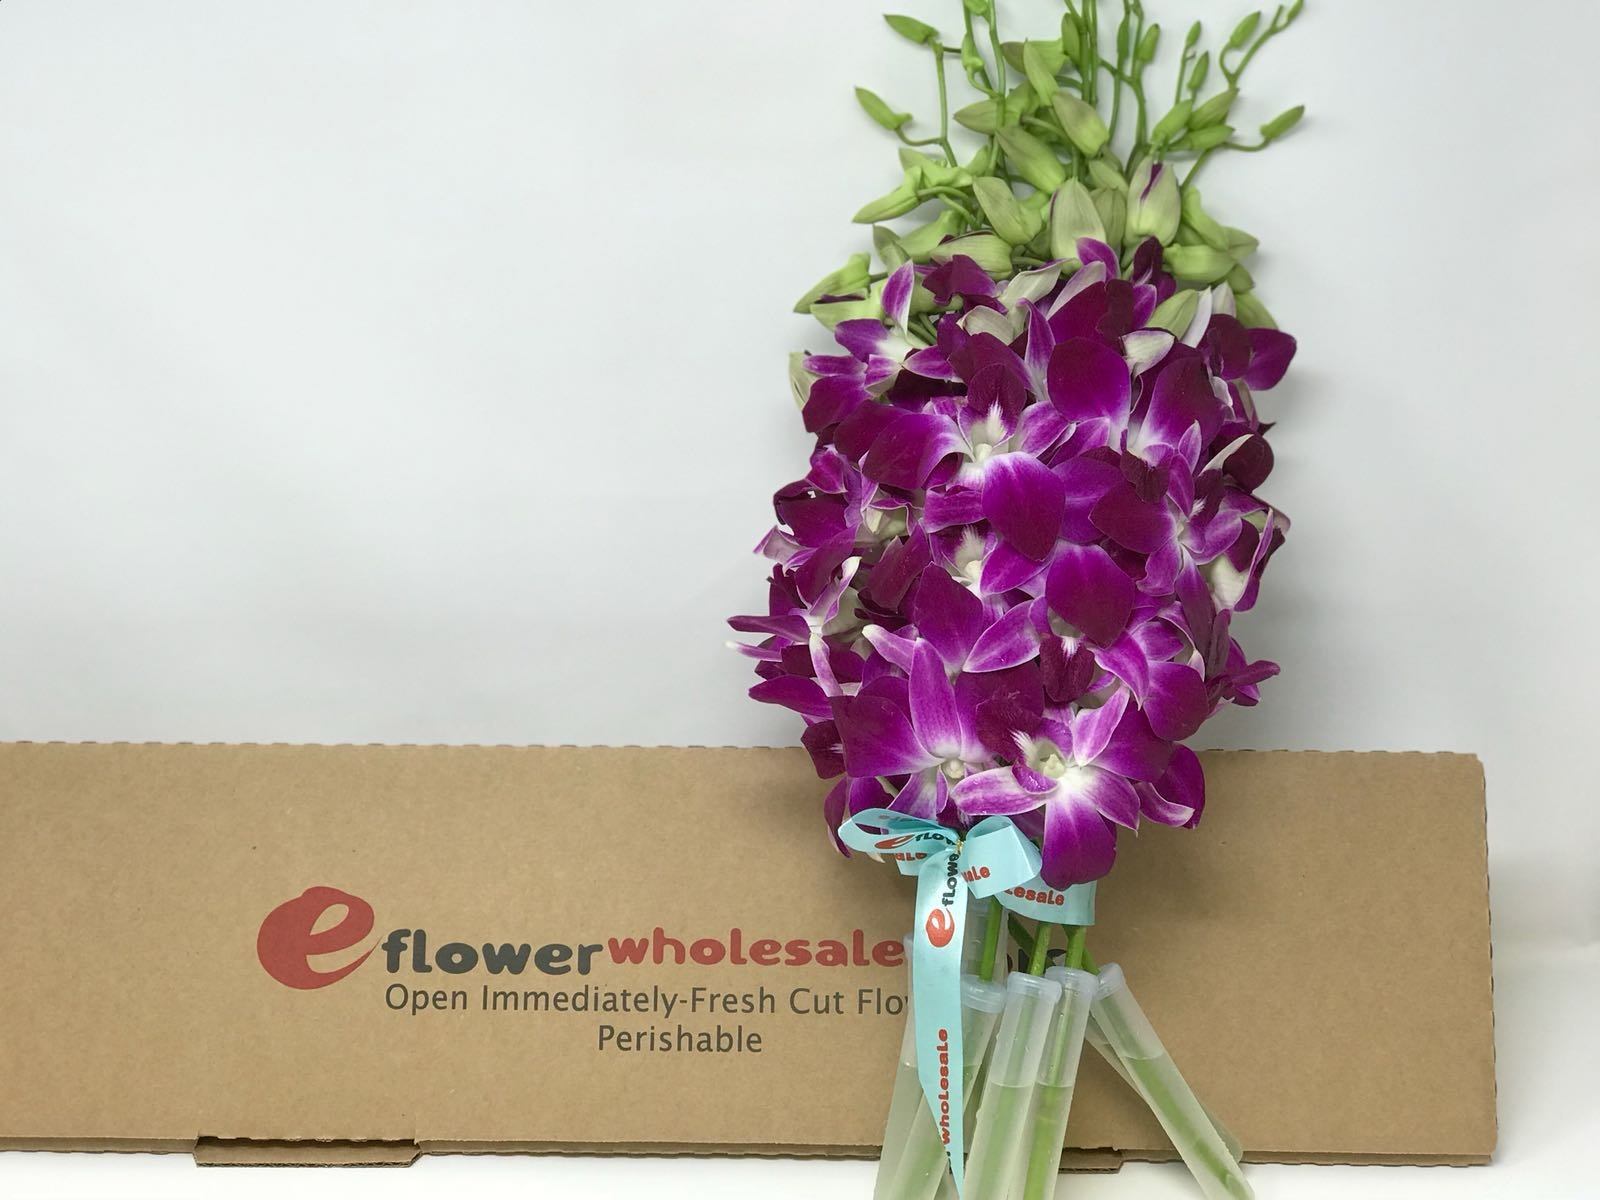 Premium Cut Purple Orchids (10 Stems Orchids) by eflowerwholesale